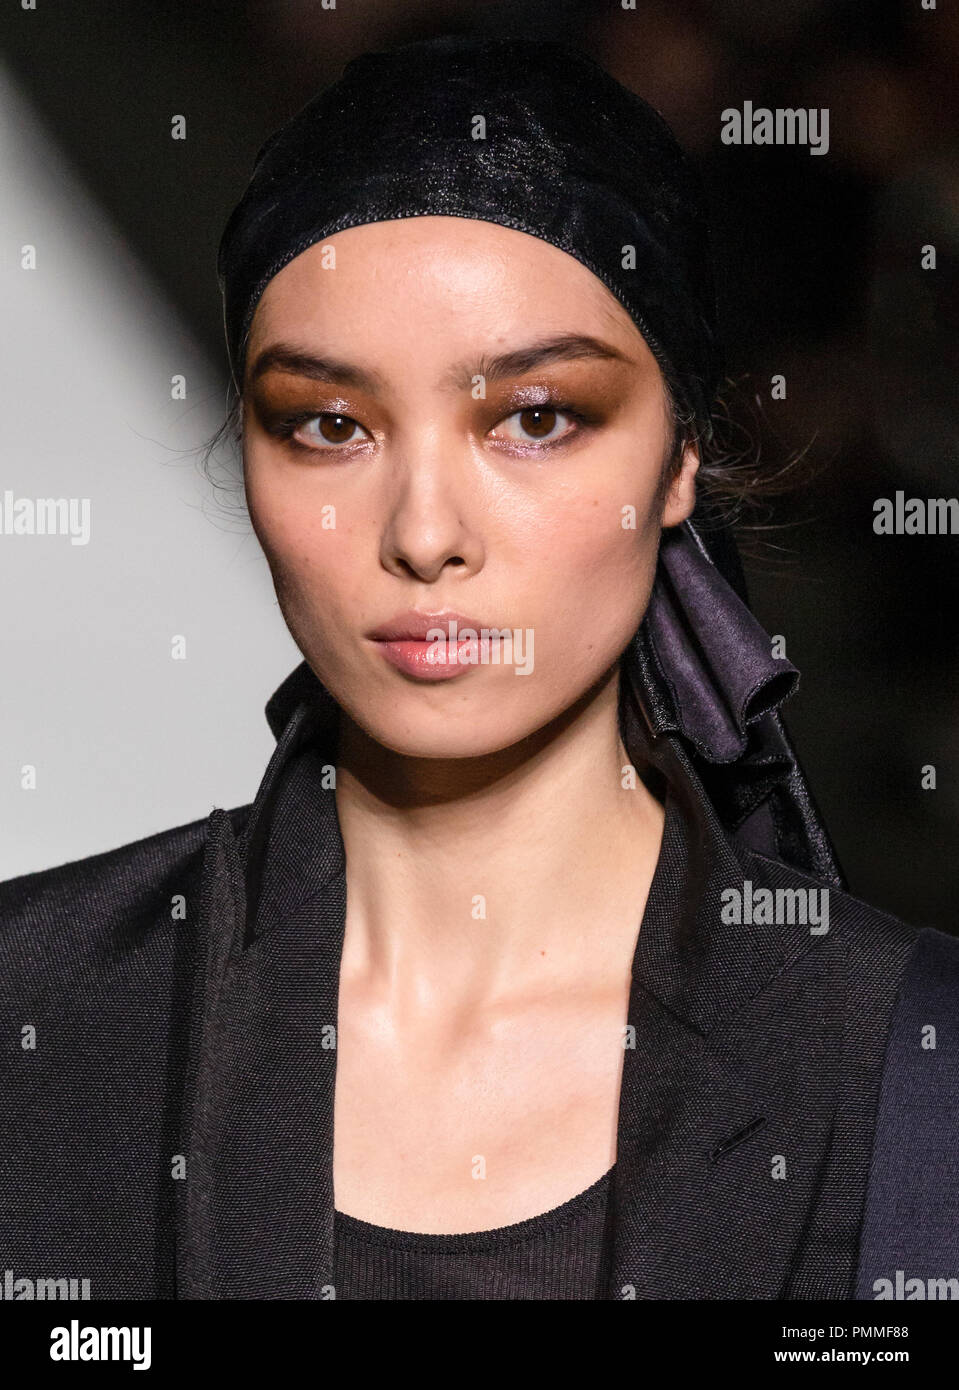 NEW YORK, NY - September 05, 2018: Fei Fei Sun walks the runway at the Tom Ford Spring Summer 2019 fashion show during New York Fashion Week Stock Photo